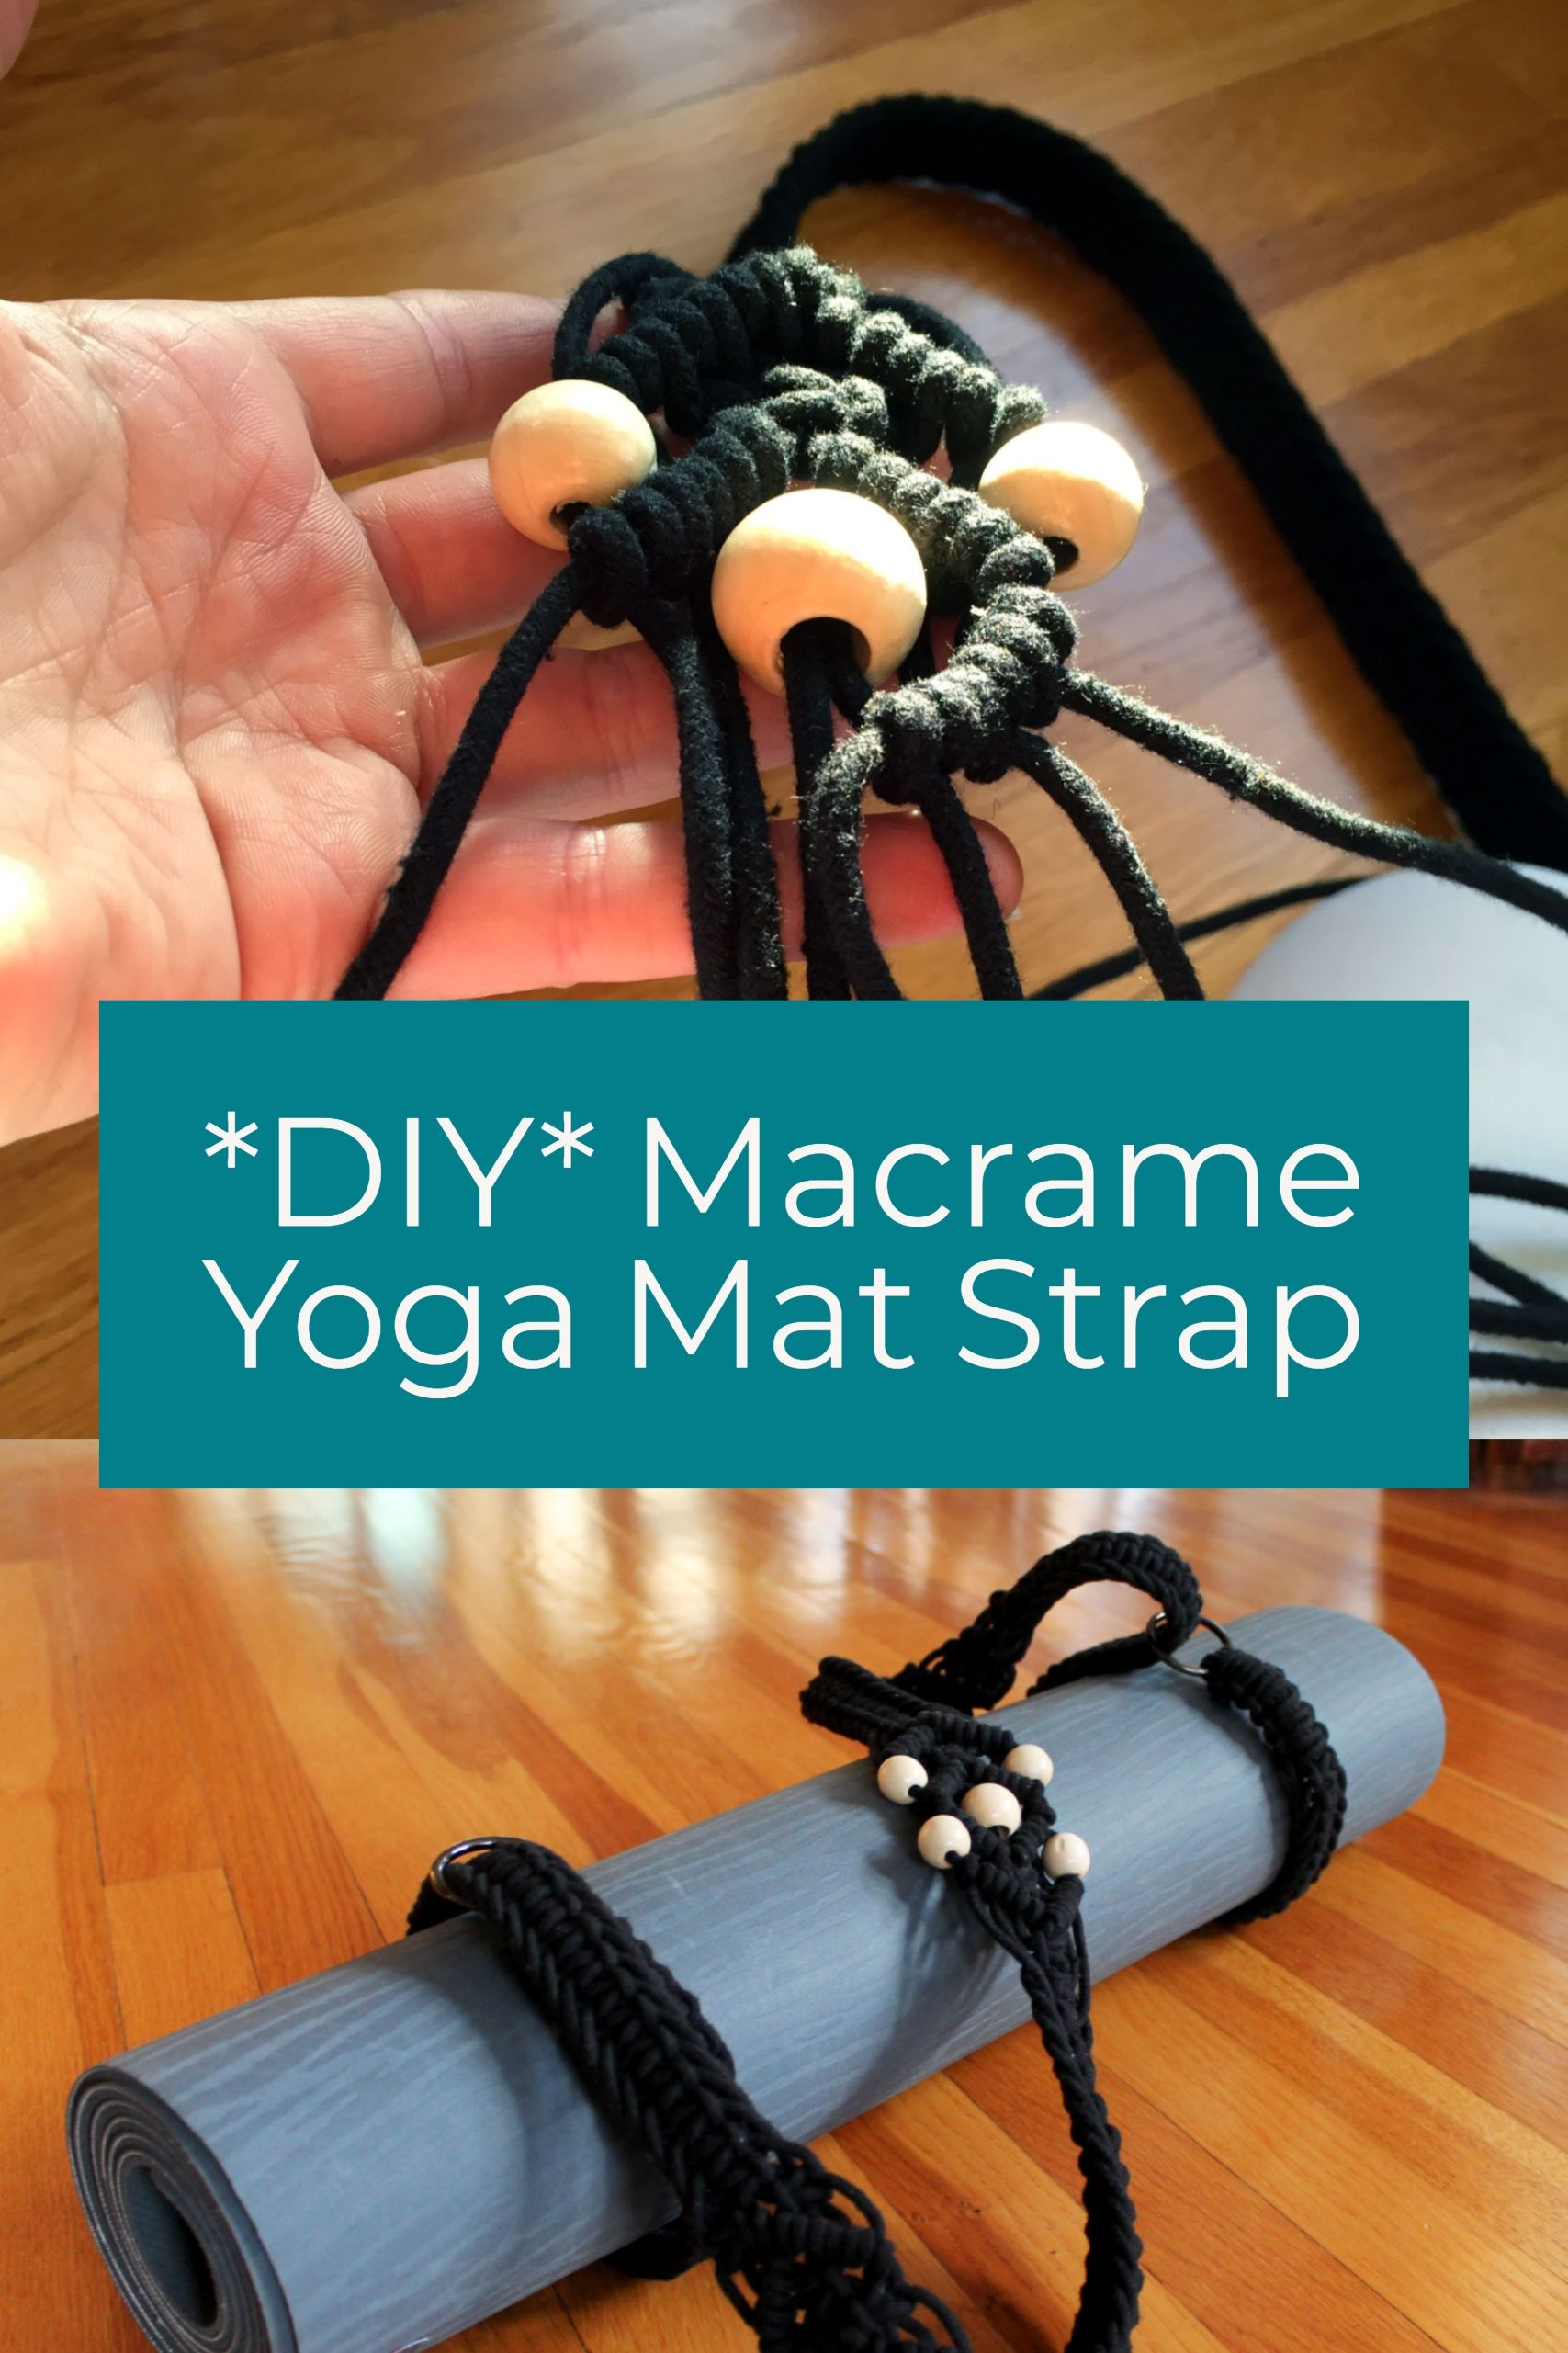 Tutorial For Macrame Yoga Mat Strap Diy Pattern Etsy In 2020 Yoga Mat Strap Yoga Mat Diy Yoga Mat